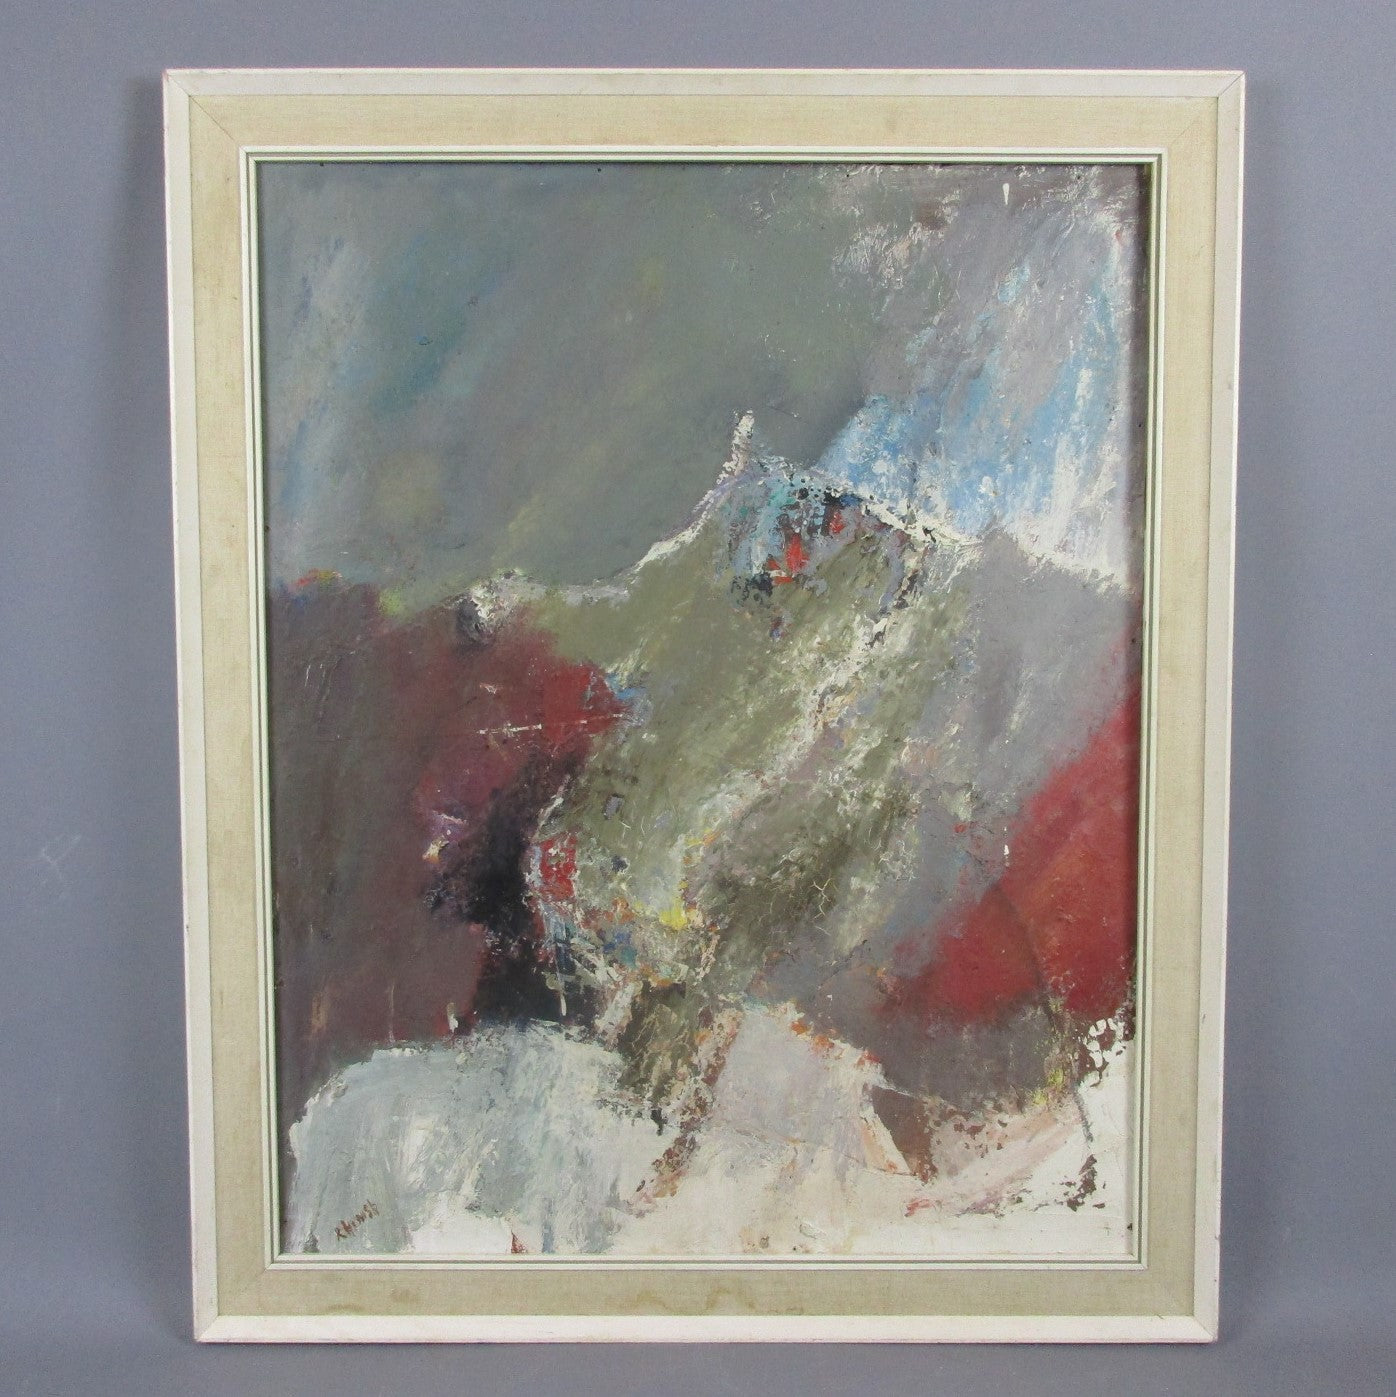 Large Oil on Board Abstract Landscape Painting by R Cornish Vintage c1970